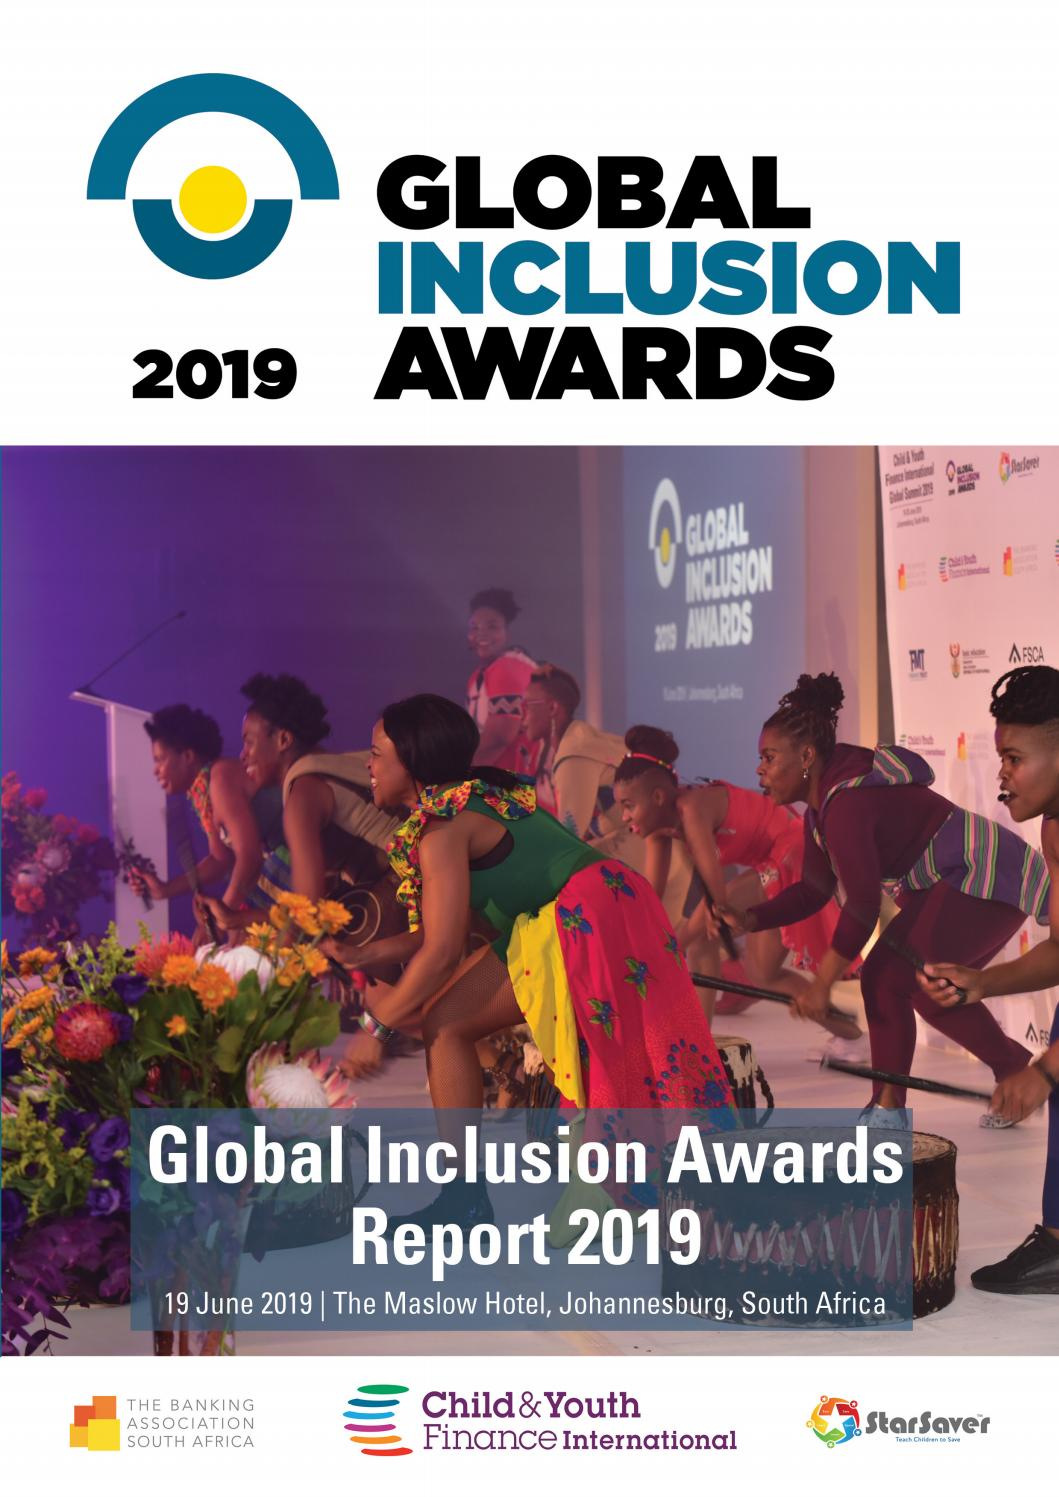 Global Inclusion Awards Report 2019 by Child & Youth Finance